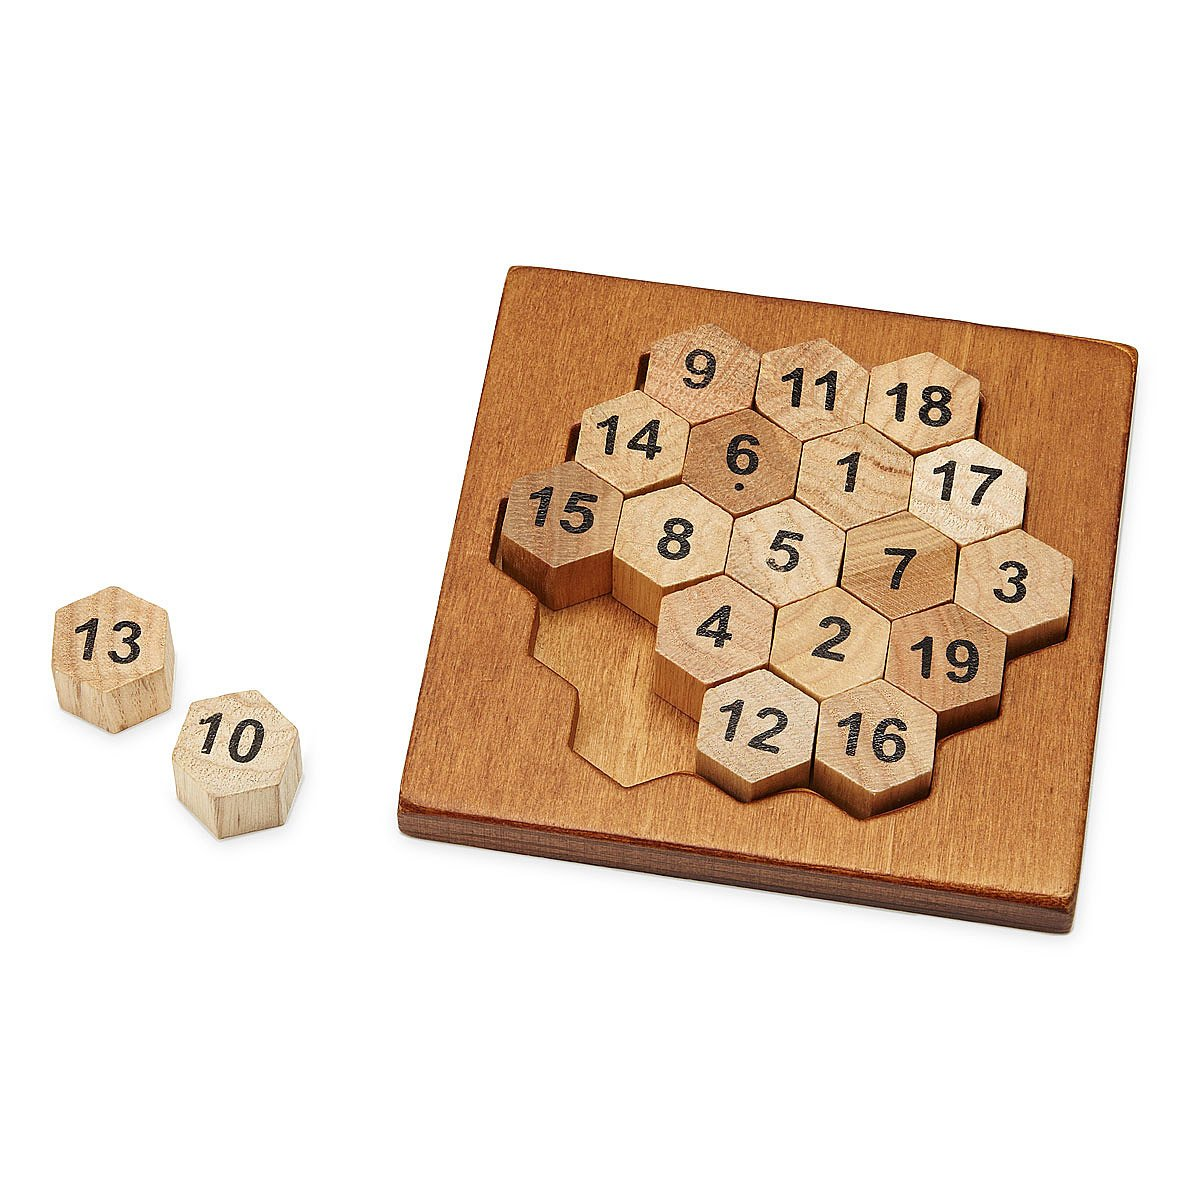 1 Left Aristotle S Number Puzzle